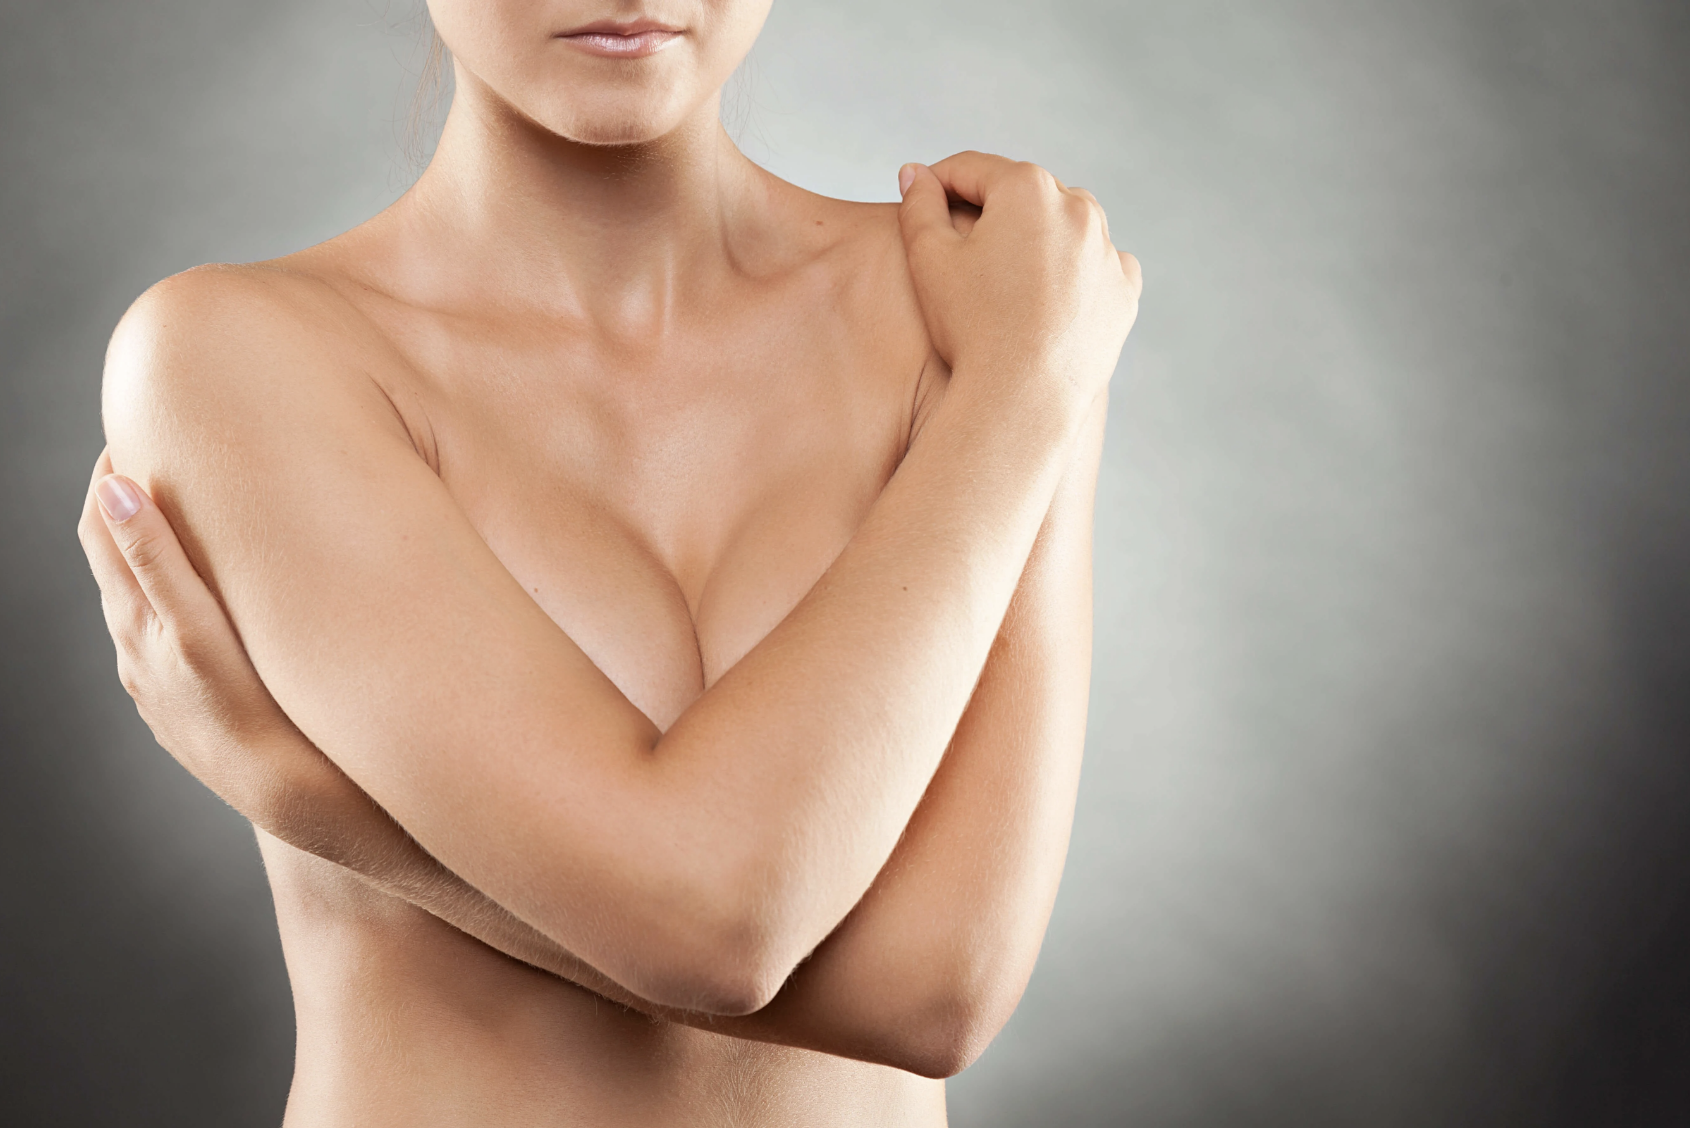 North Shore Cosmetic Surgery Blog |  I Had Breast Augmentation But Feel My Implants Are Too Big. What Are My Options?